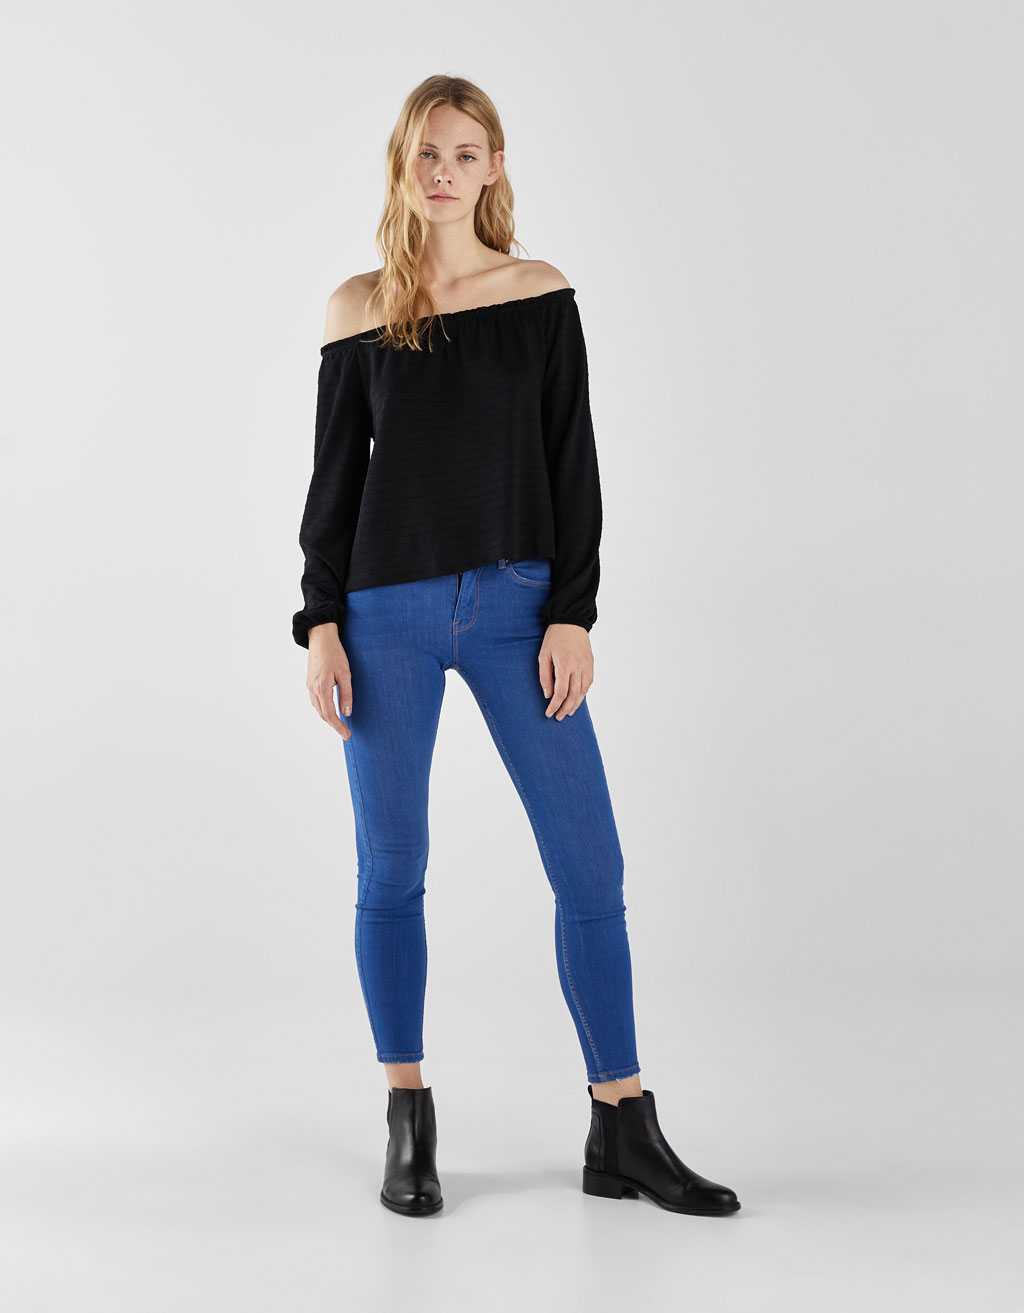 Mid Rise Skinny Jeans with 5 pockets